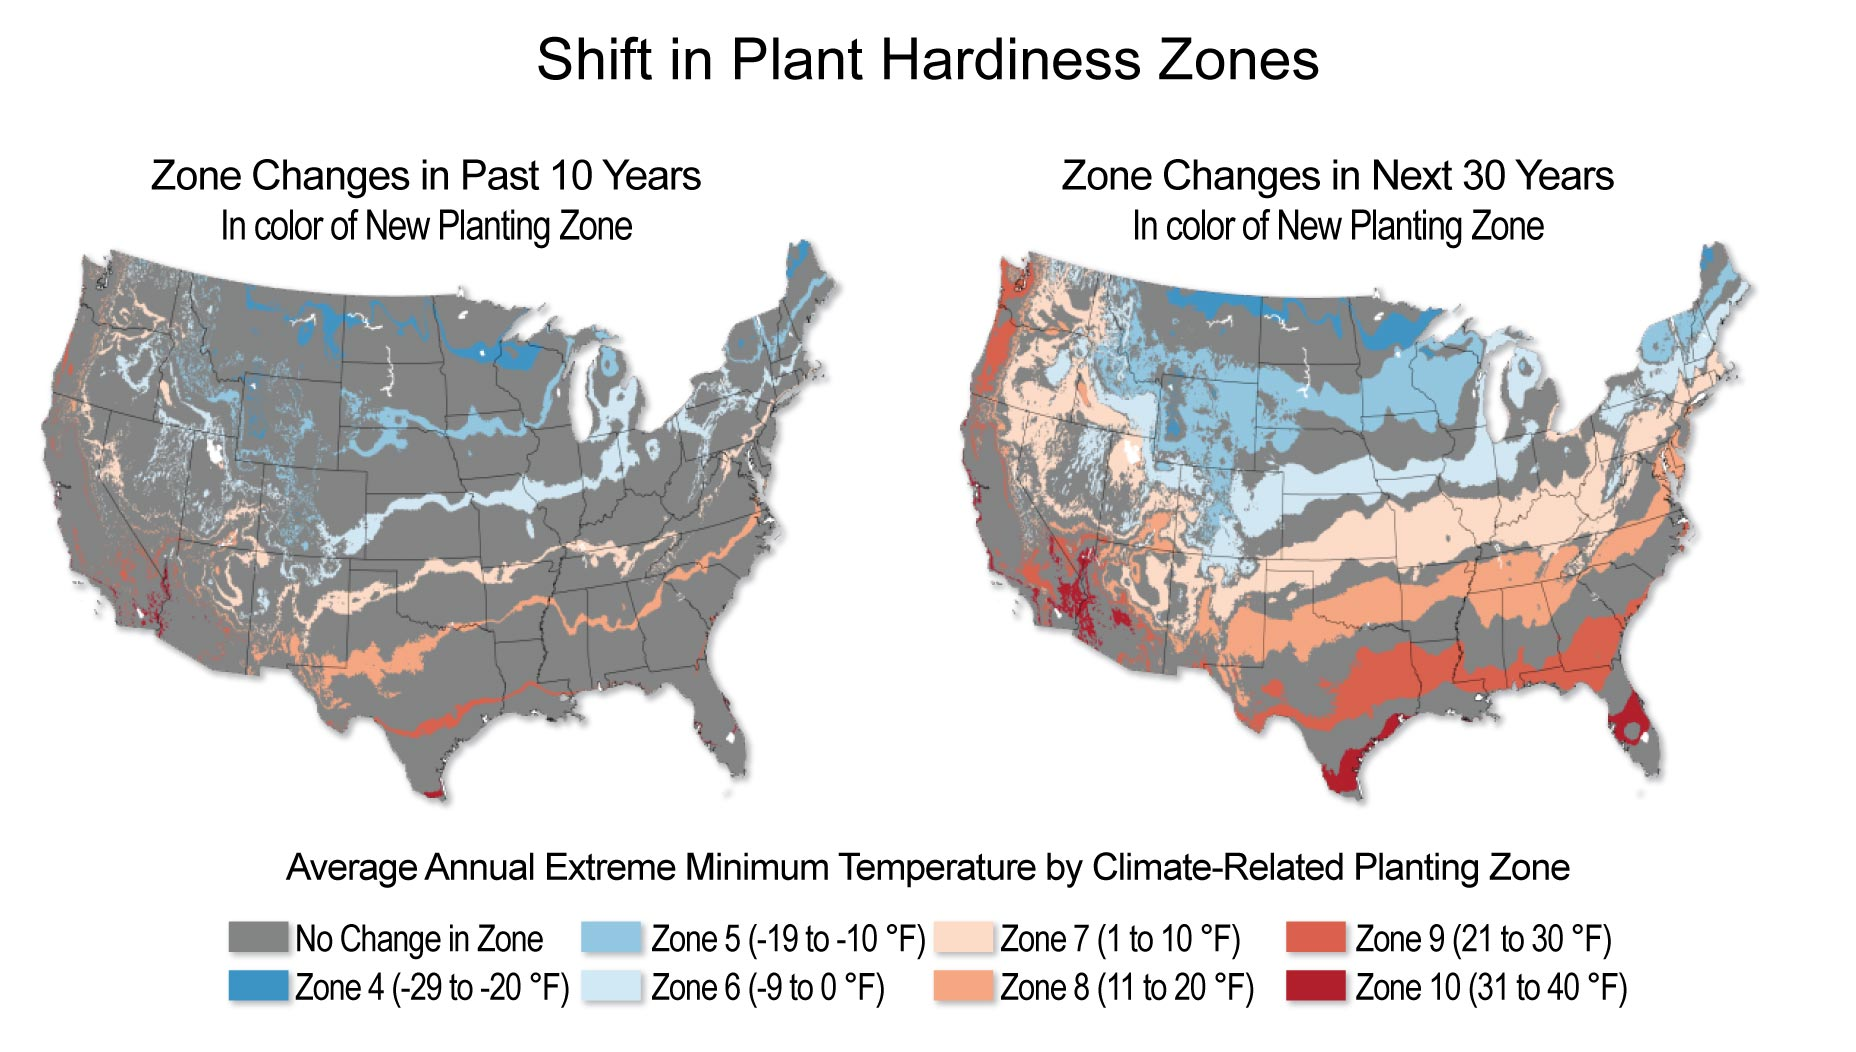 Shifts in Plant Hardiness Zones